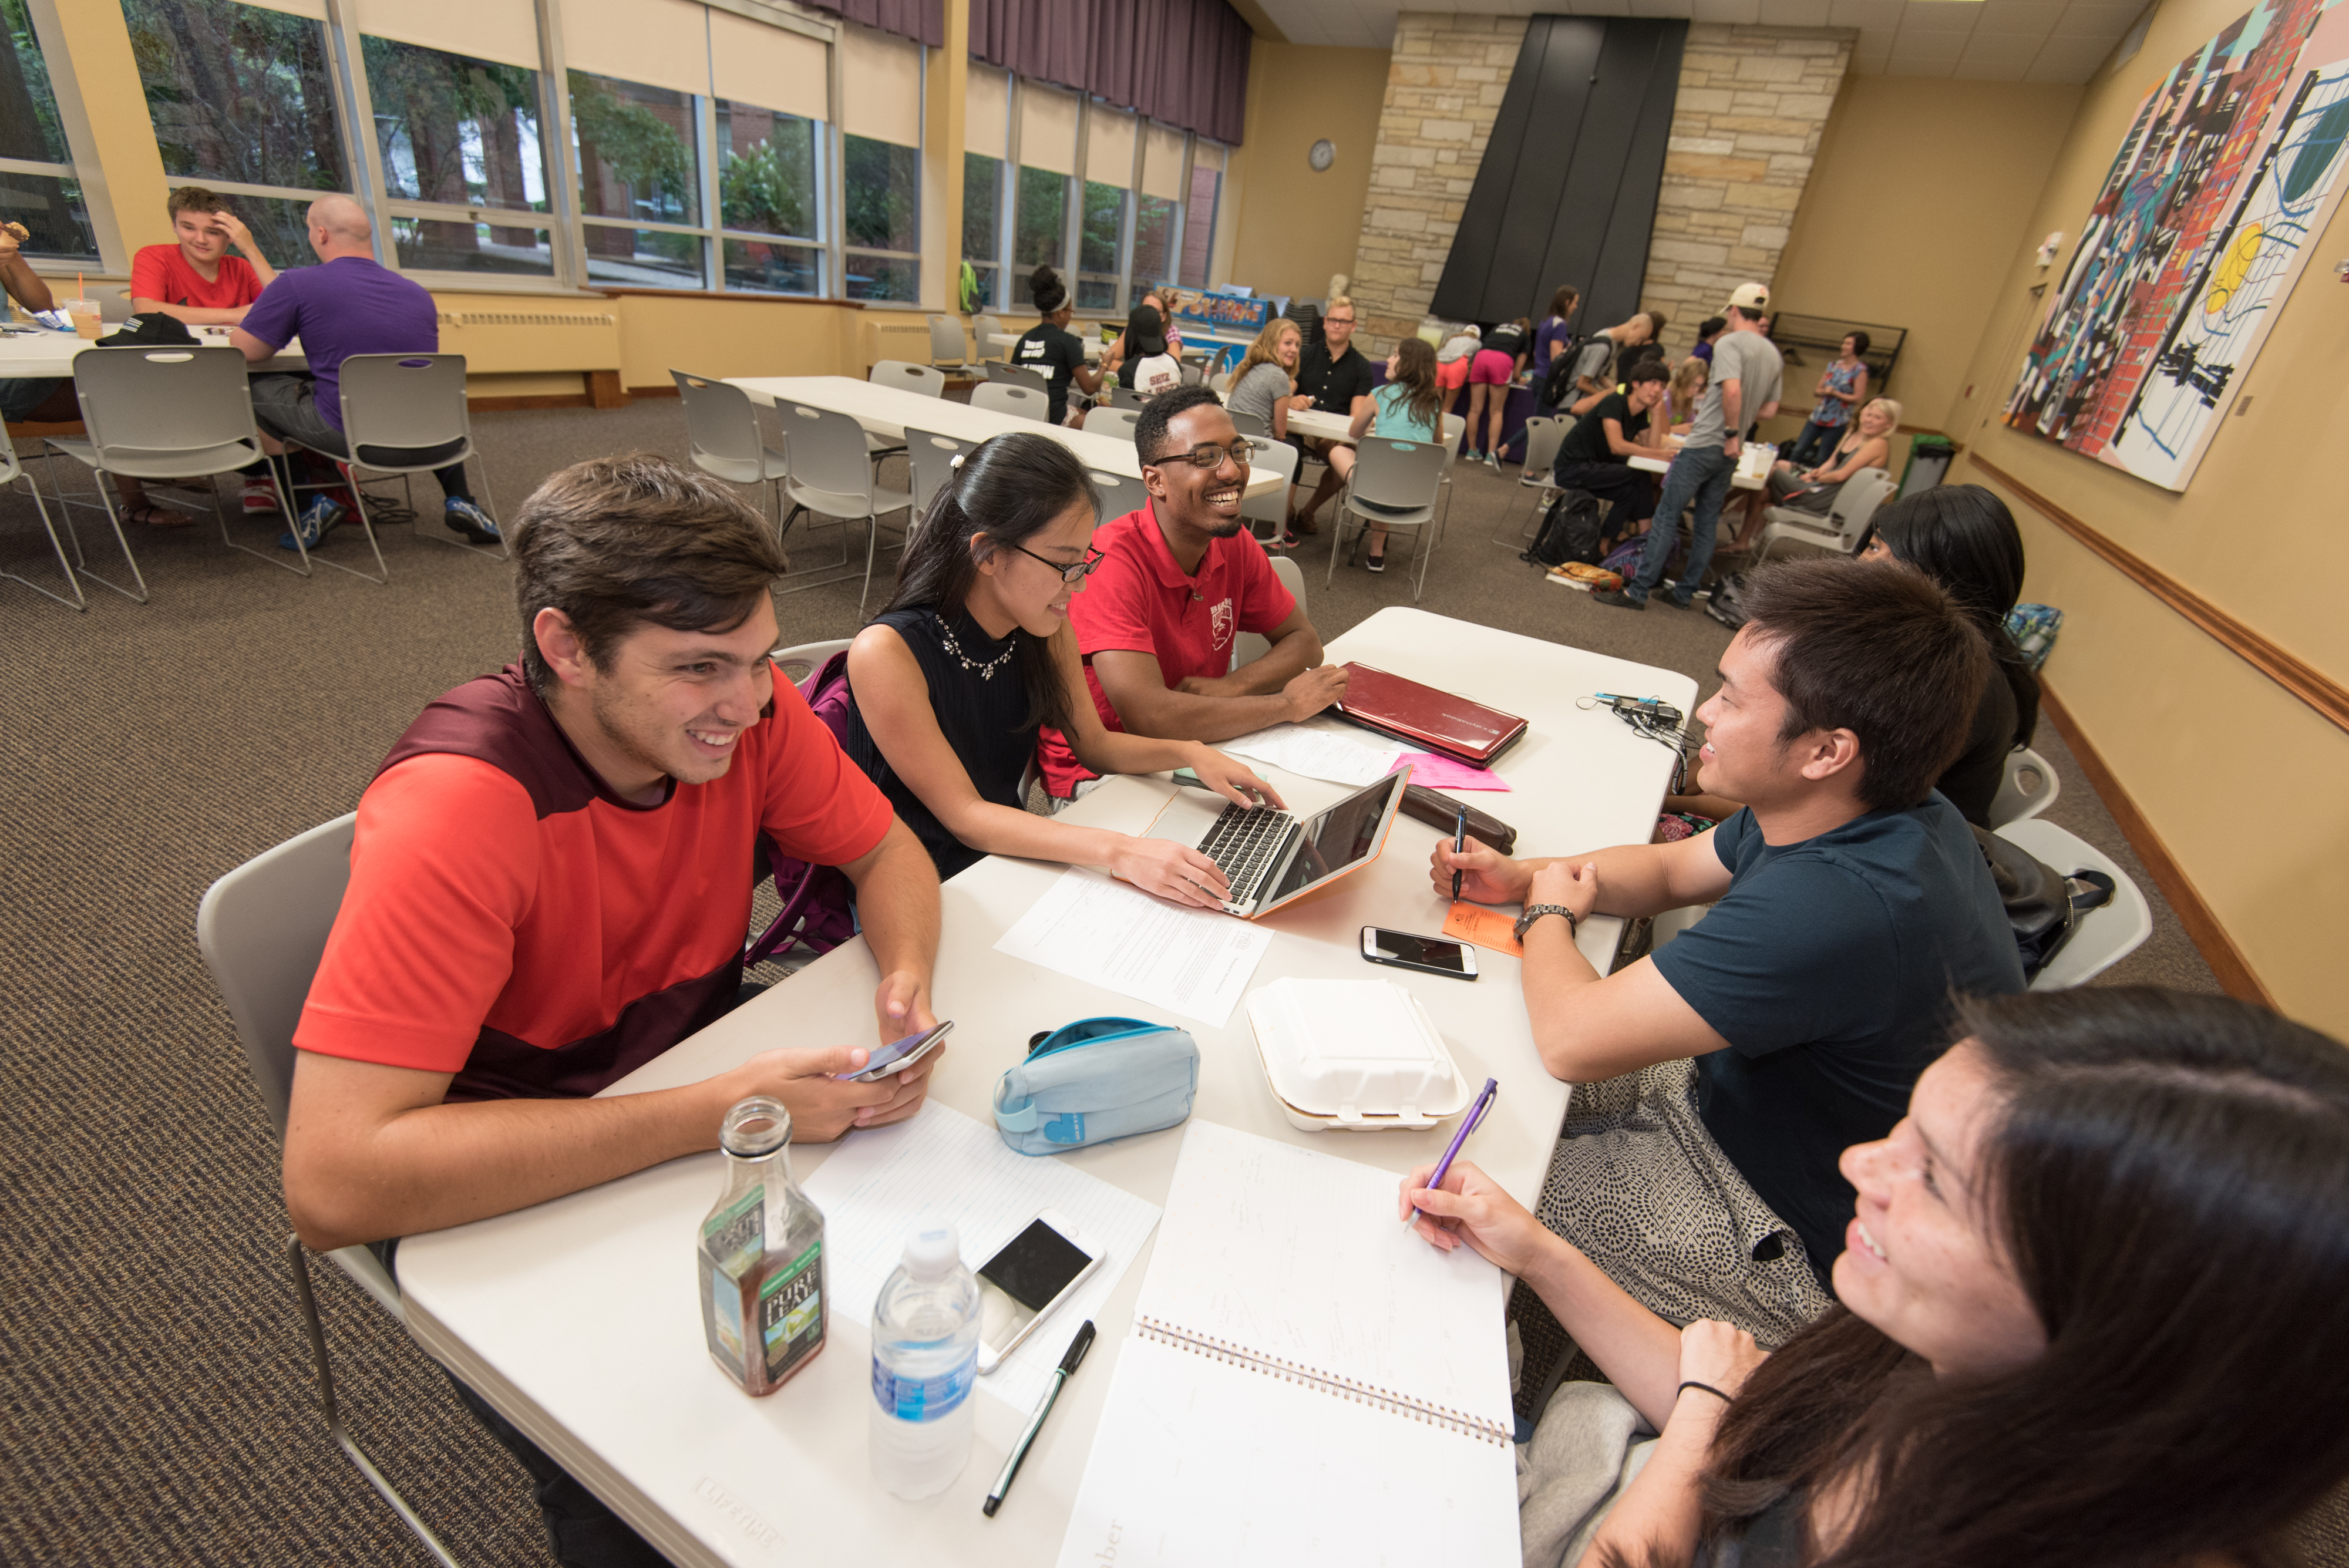 University of Mount Union students in meeting